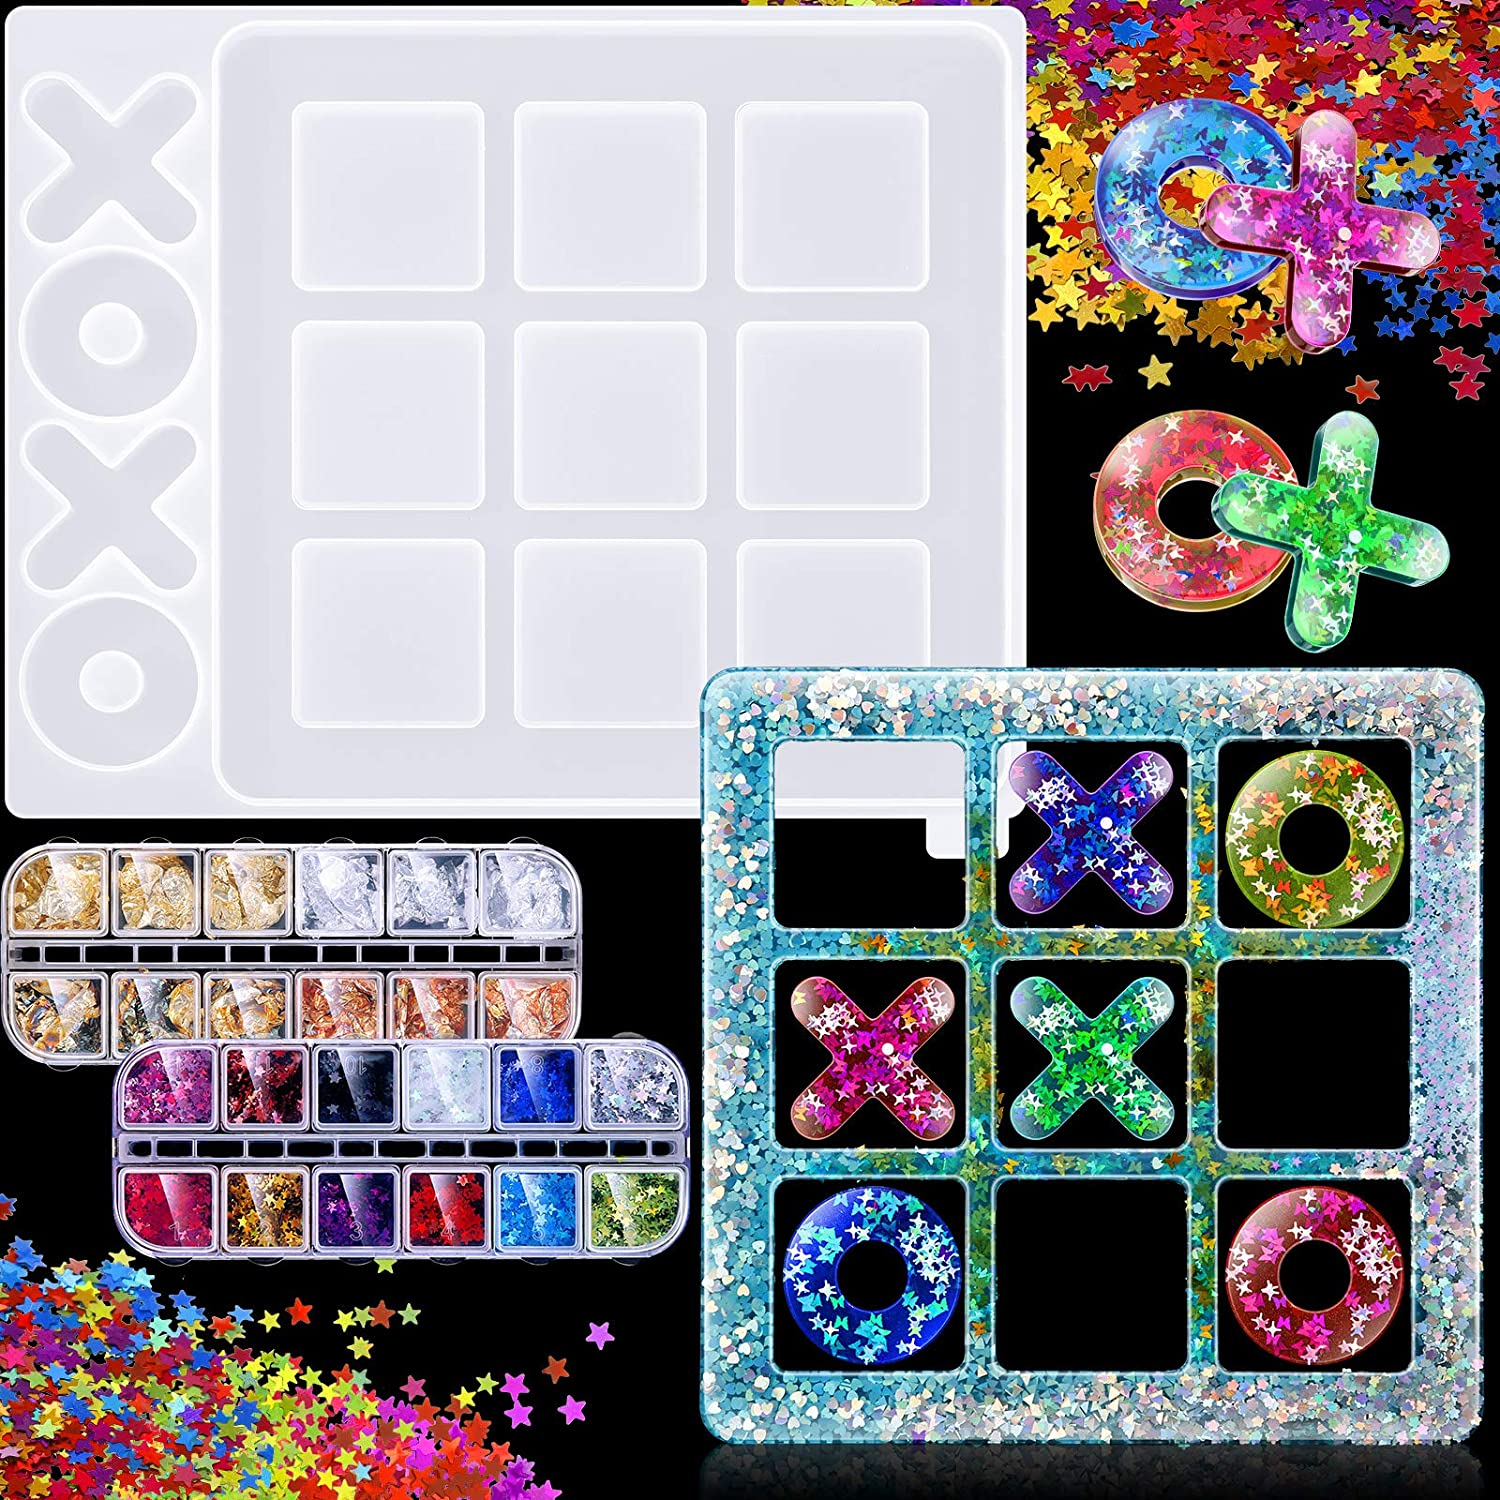 Tic famous Tac Toe Board Free Shipping Cheap Bargain Gift Game Mold Silicone Games O Epoxy Resin X